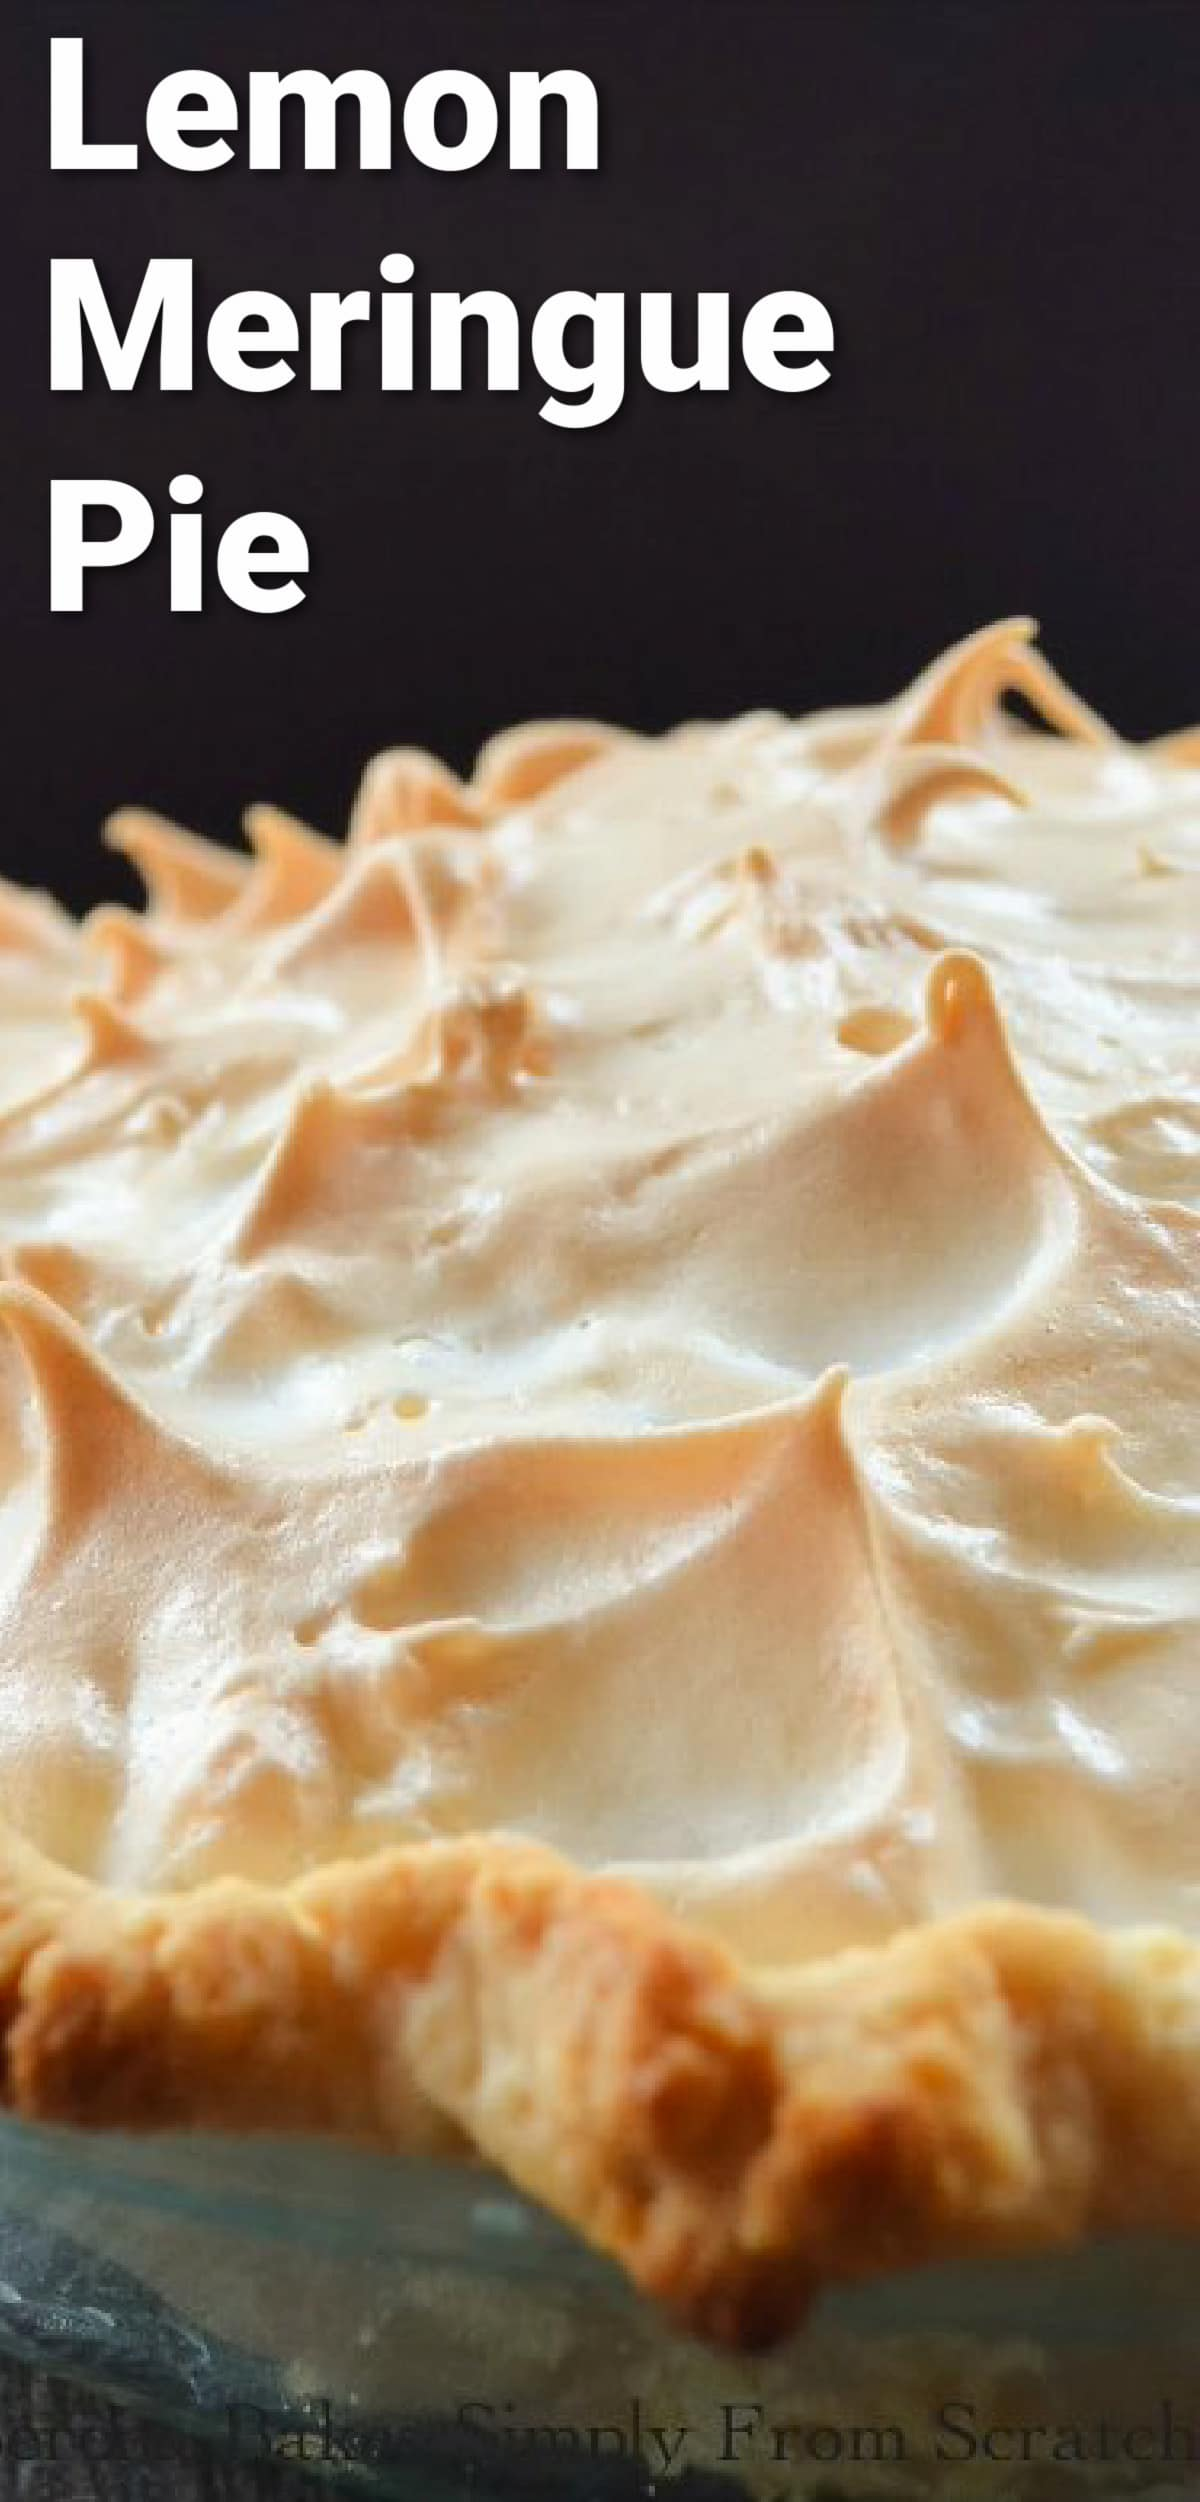 Lemon Meringue Pie with a Weep Free Meringue